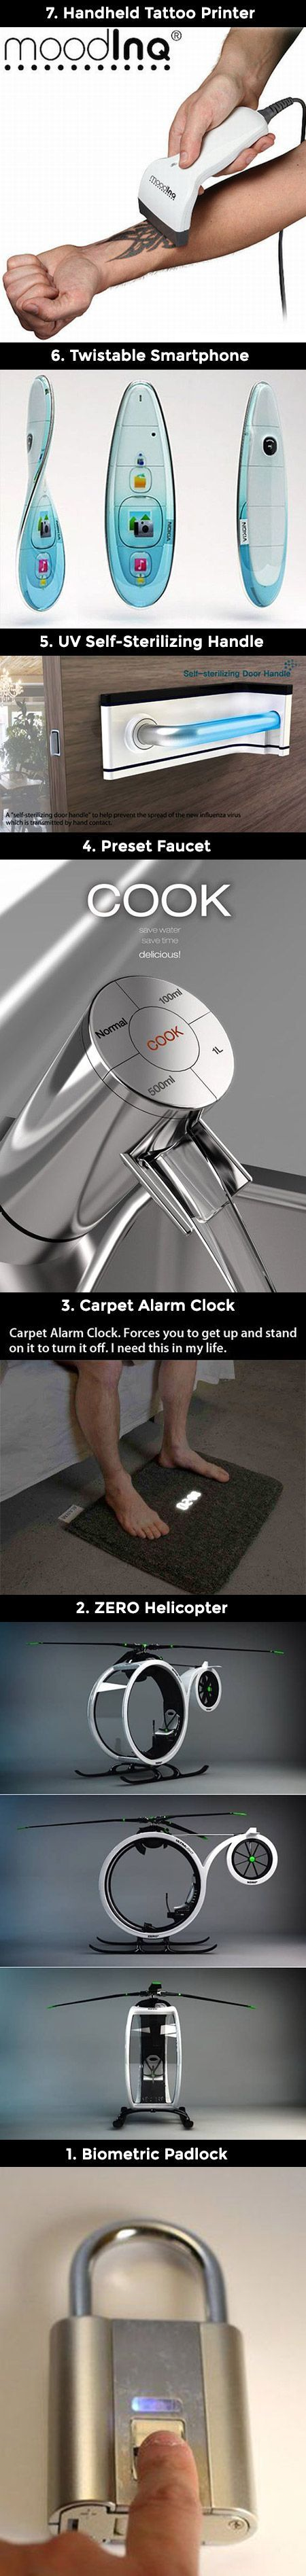 Best Funny Inventions Ideas On Pinterest Invention Ideas - 20 strange awesome inventions need life